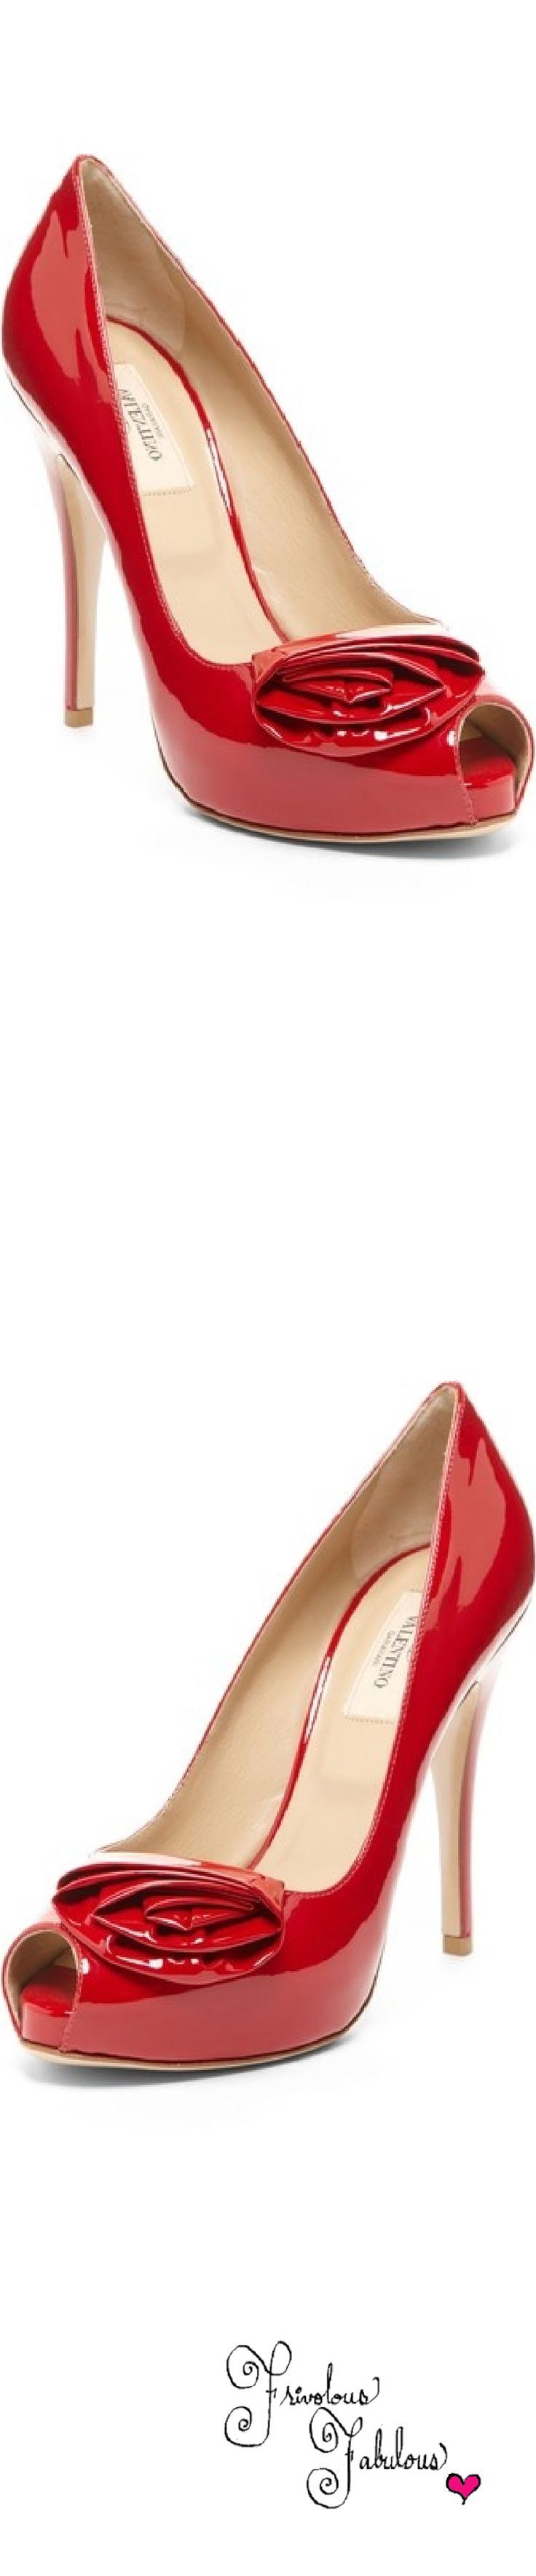 Valentino Red Patent Leather Peep Toe Pumps | House of Beccaria~